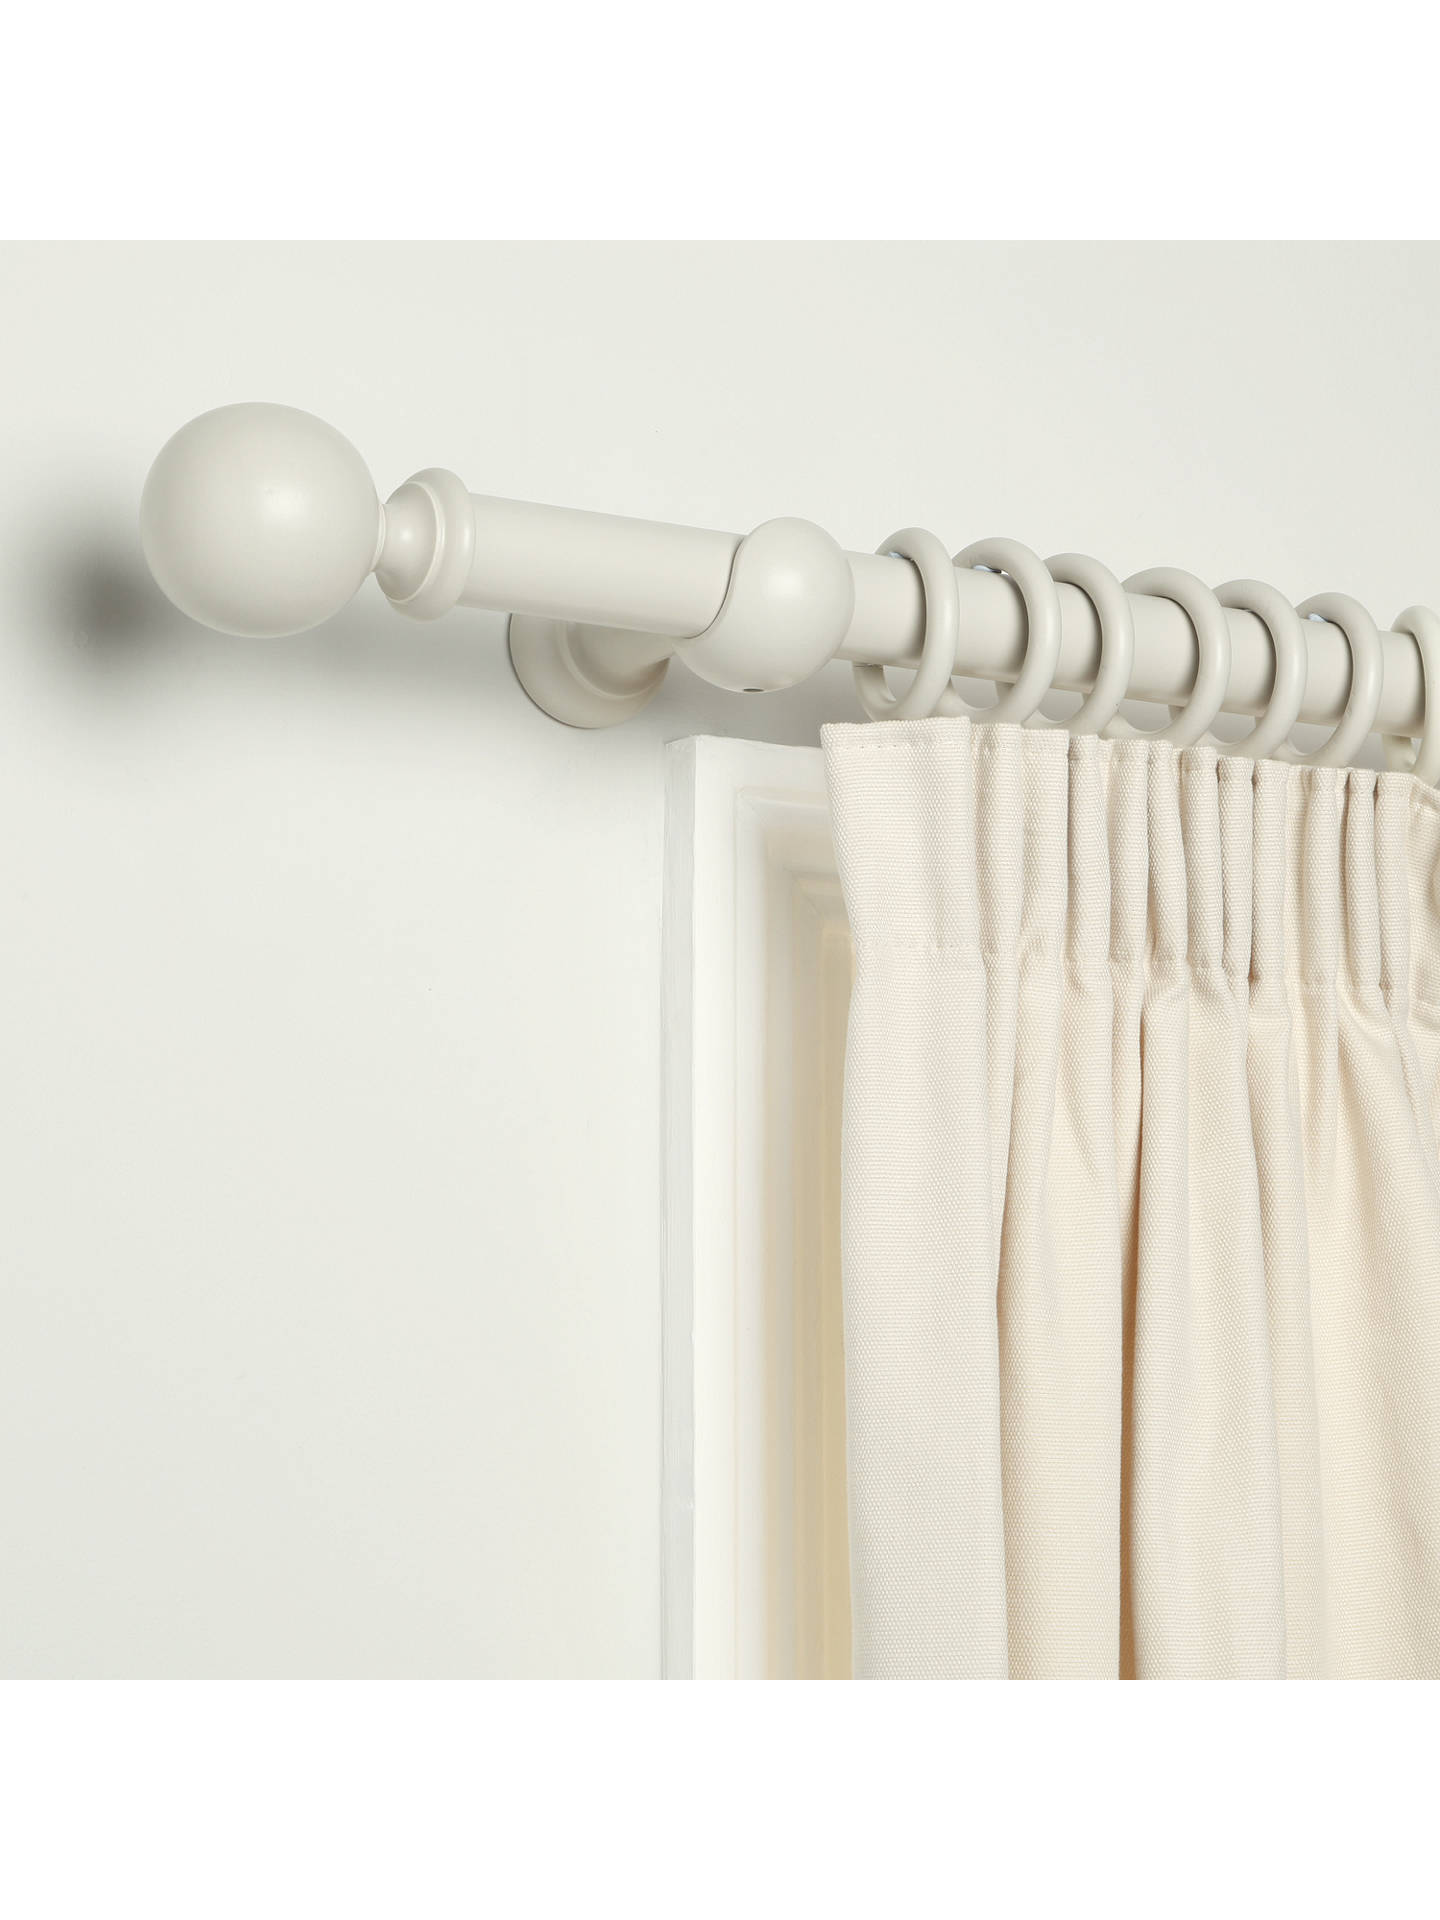 BuyJohn Lewis & Partners French Grey Curtain Pole, L120 x Dia.35mm Online at johnlewis.com